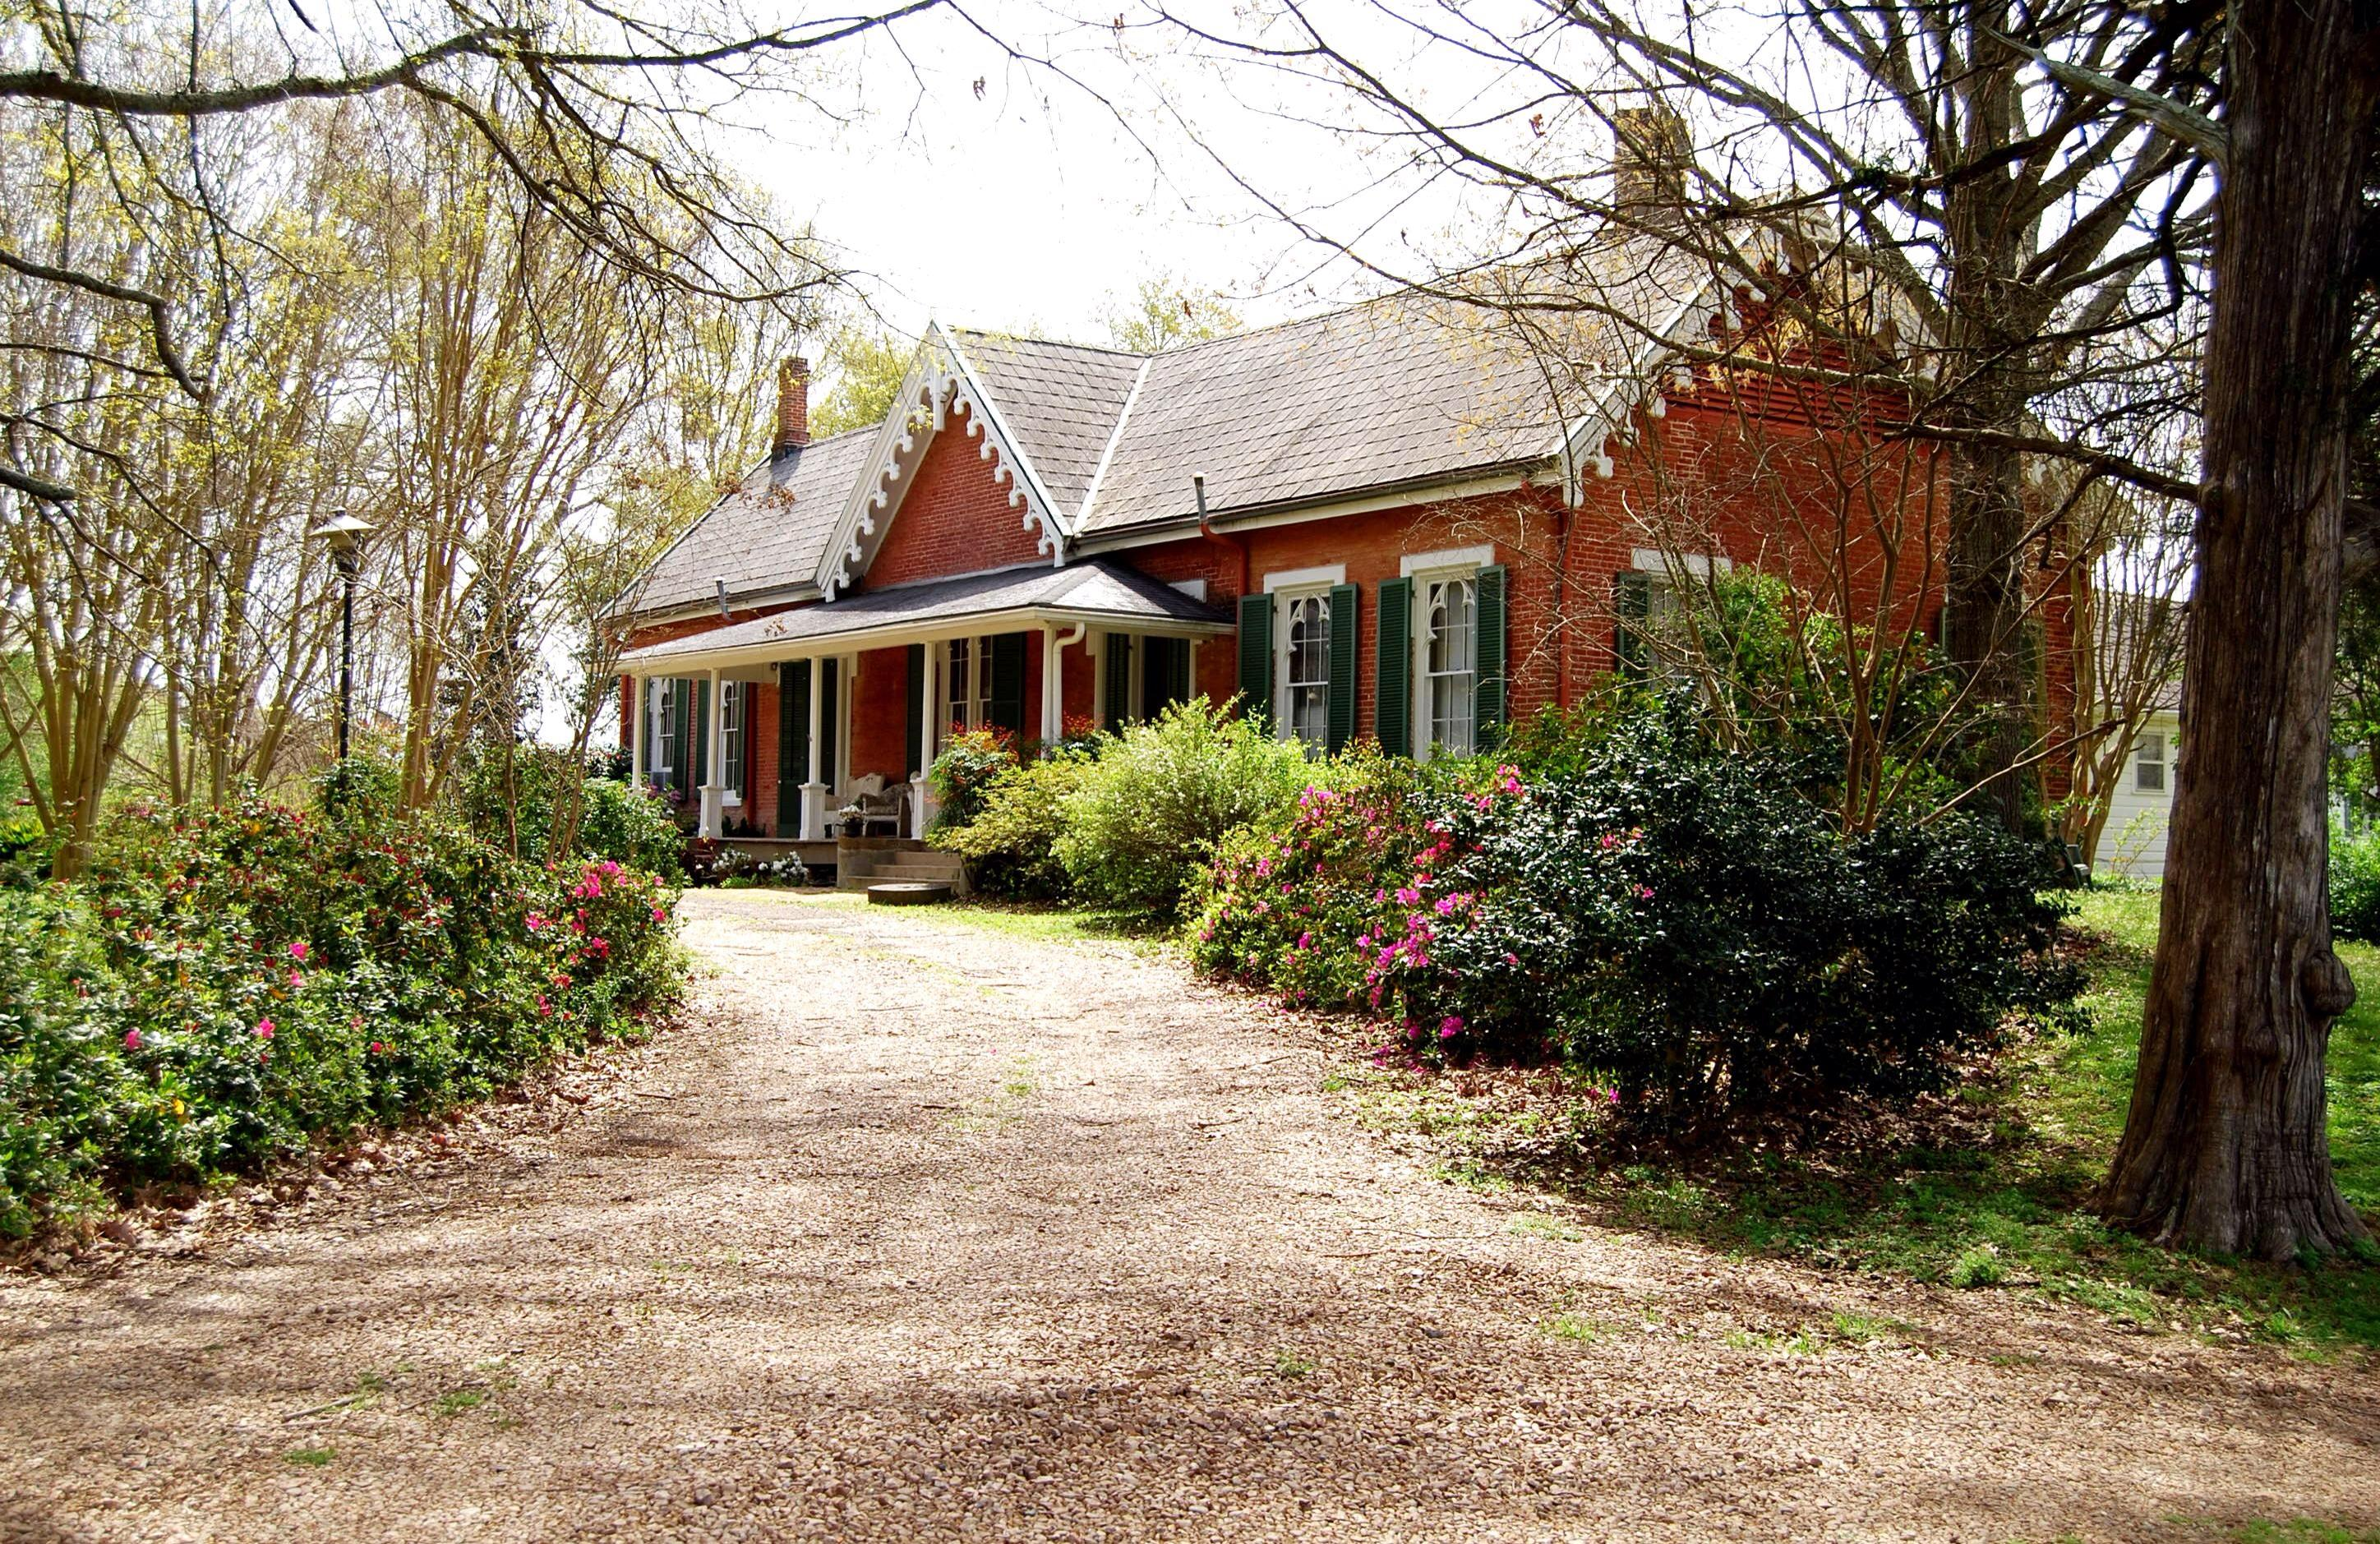 Glenfield Plantation Bed and Breakfast